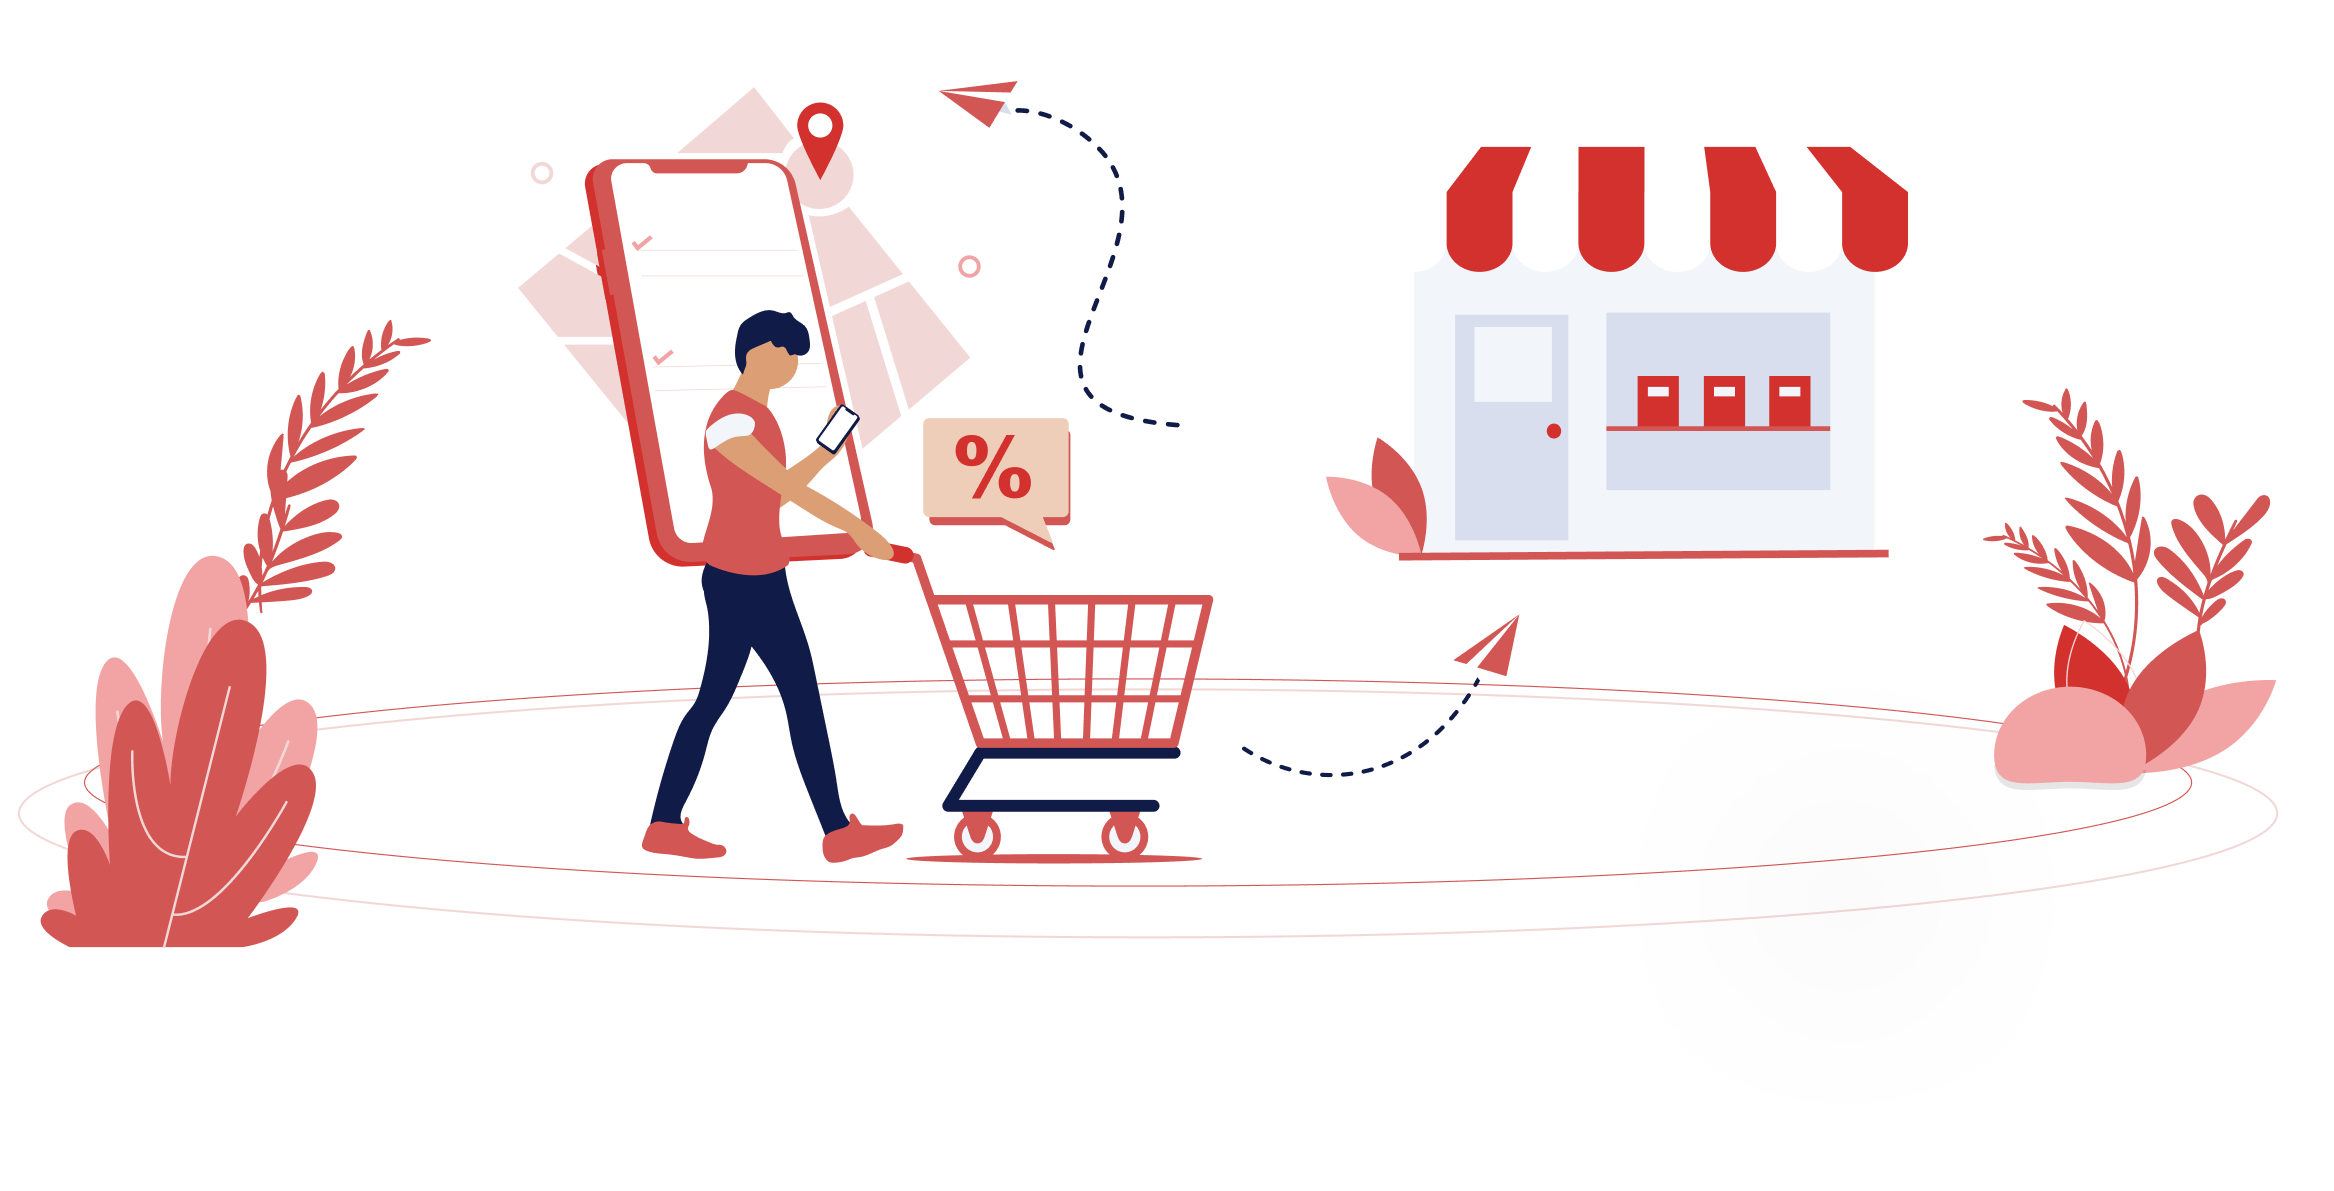 DRIVE-TO-STORE STRATEGY